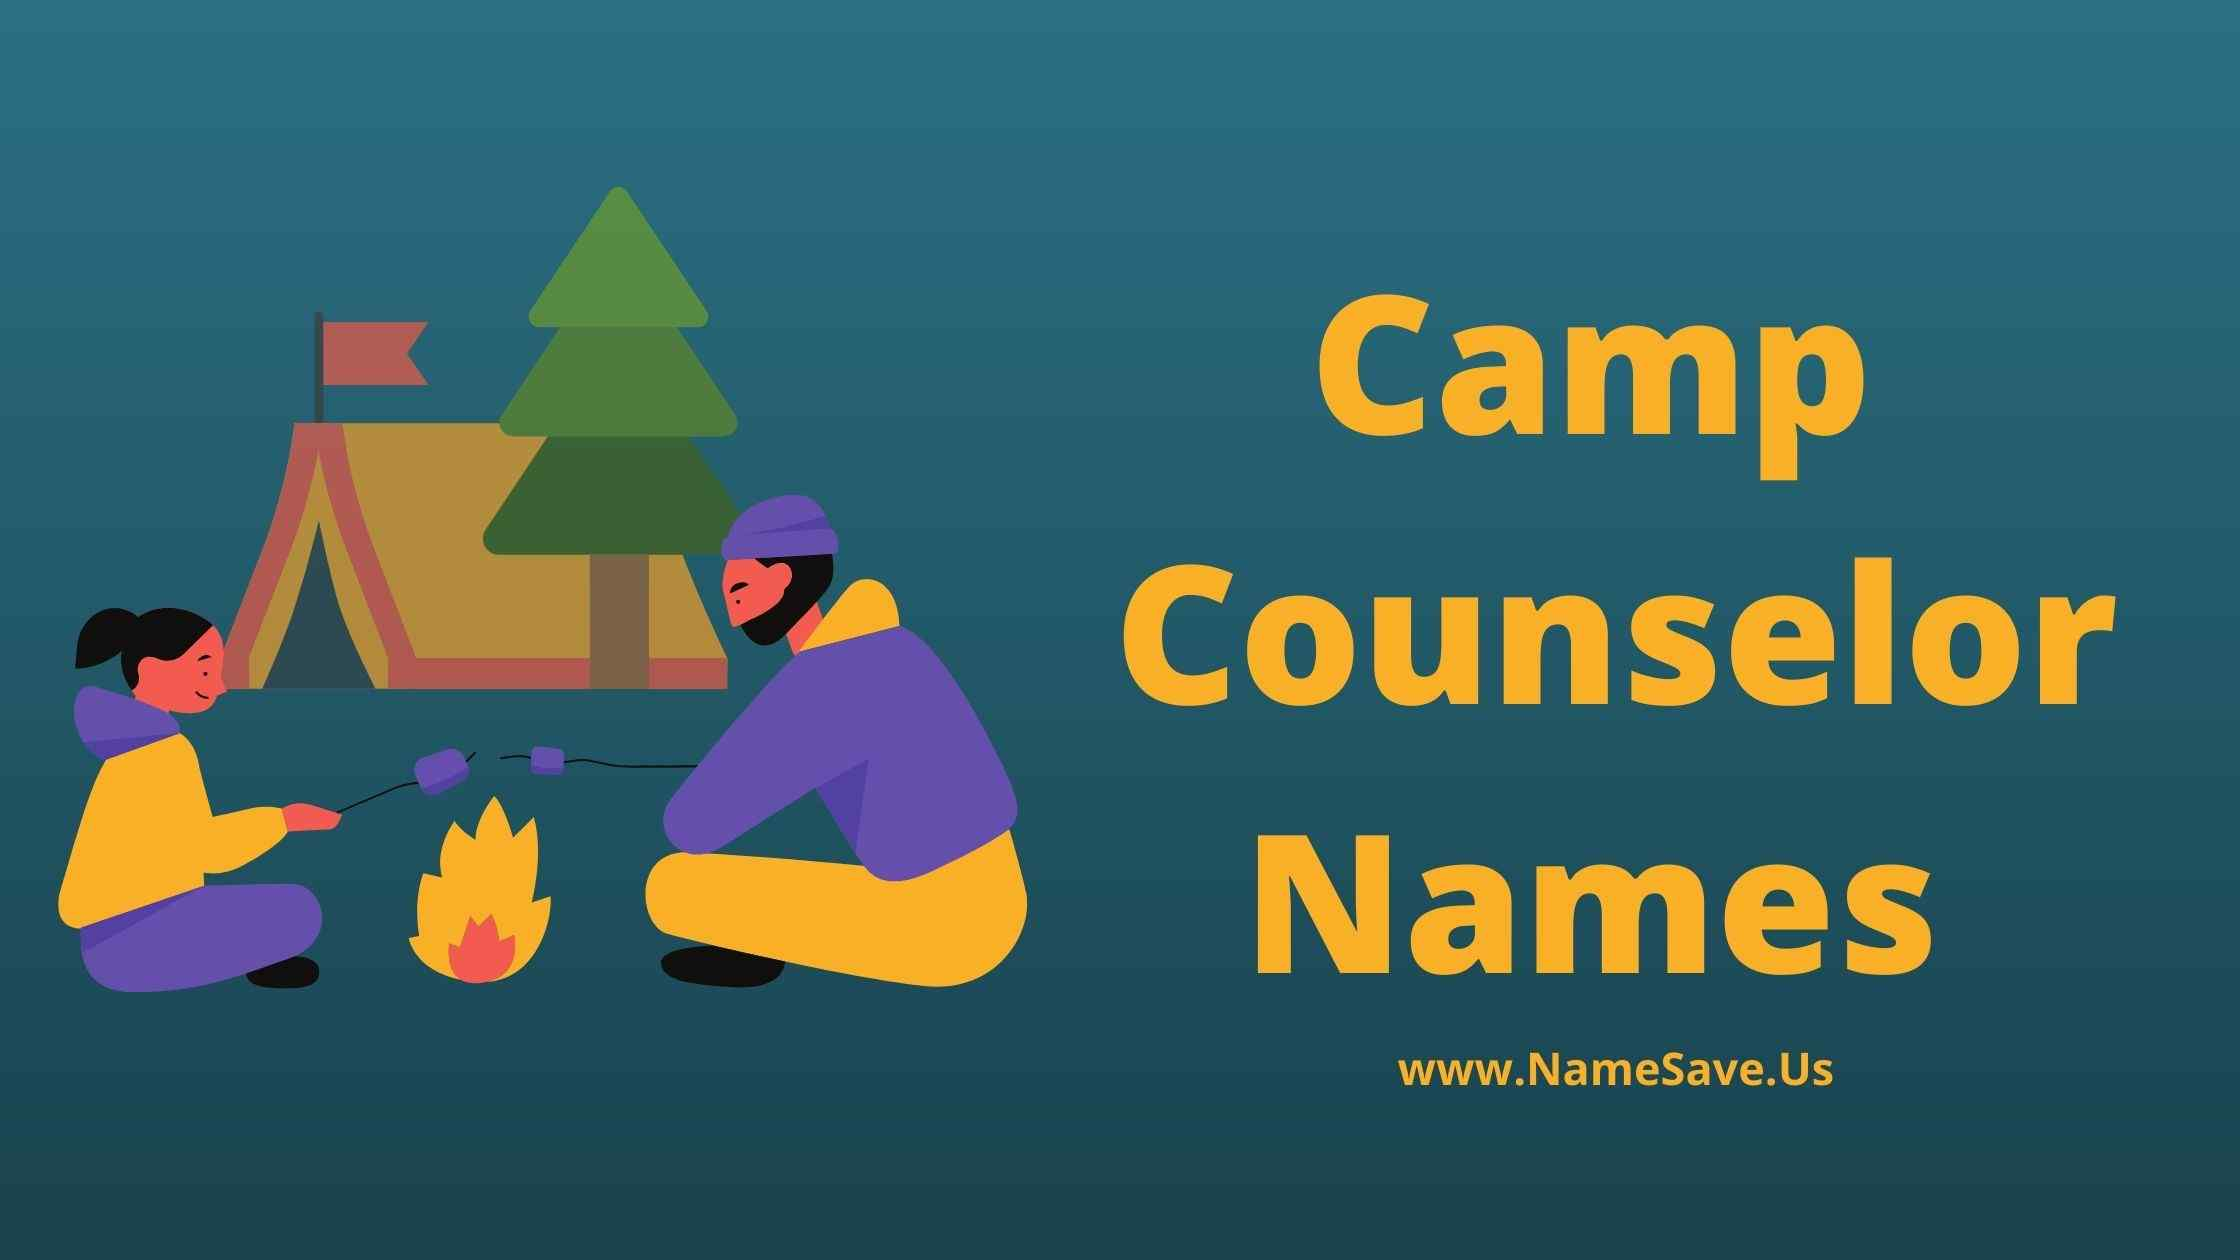 Camp Counselor Names List